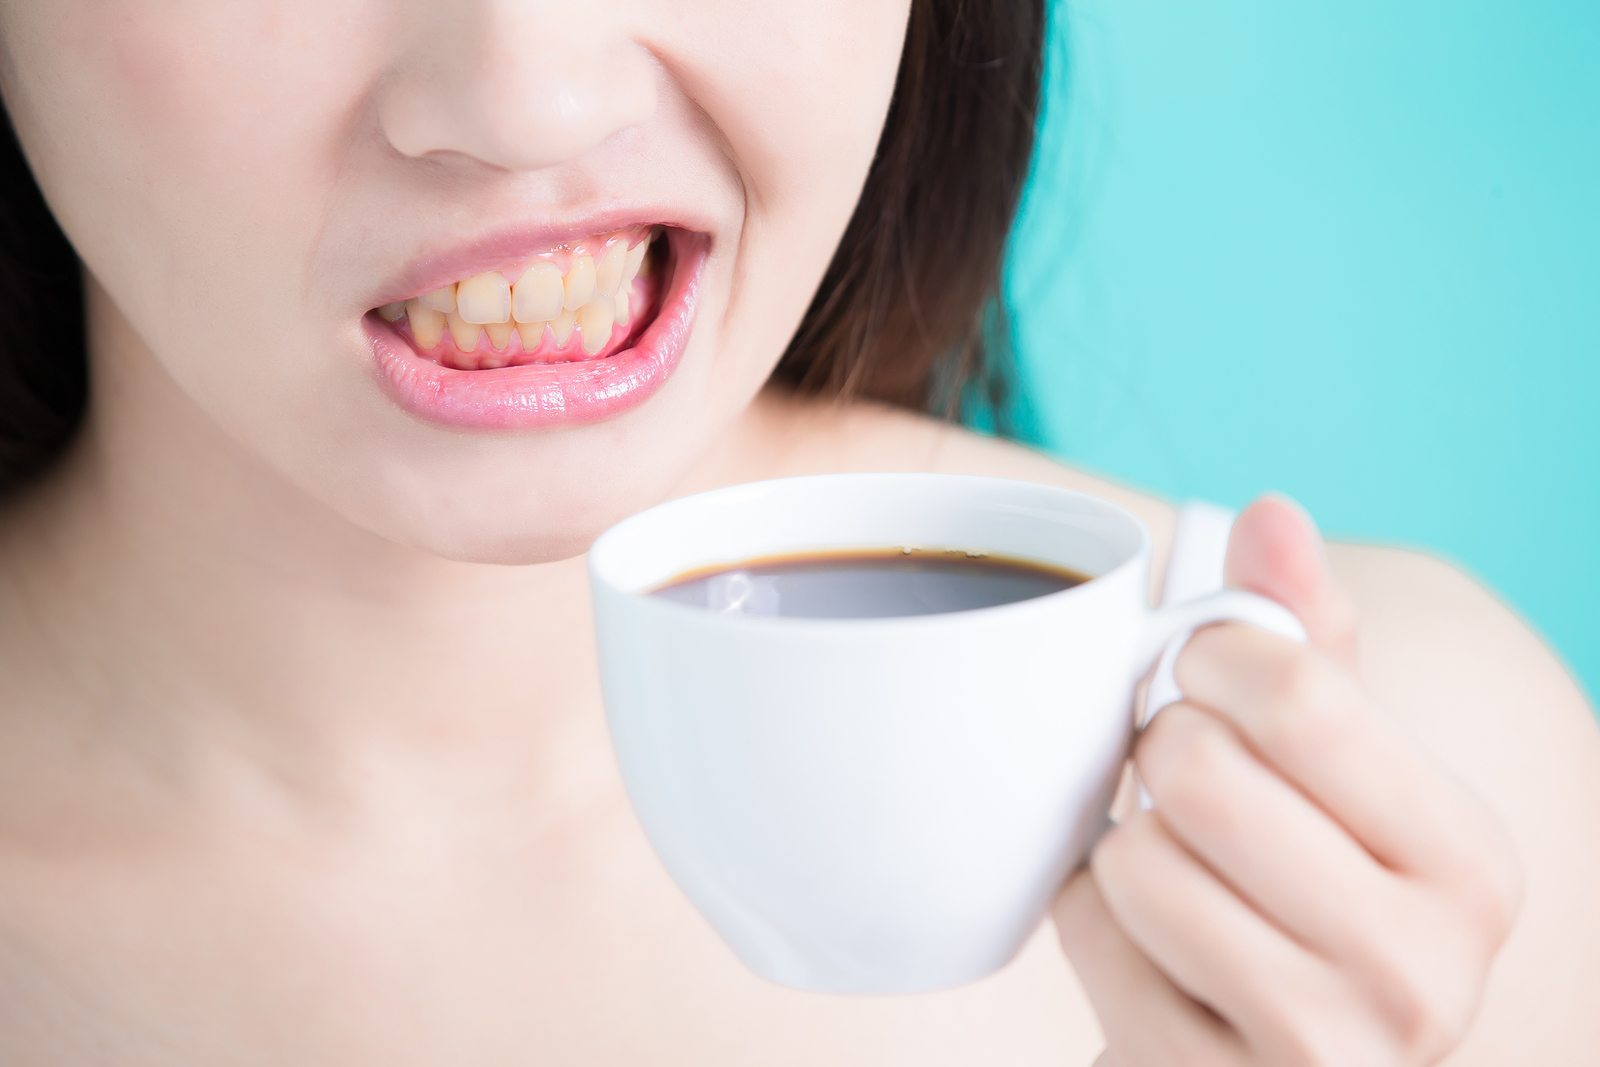 The coffee turns the woman teeth yellow